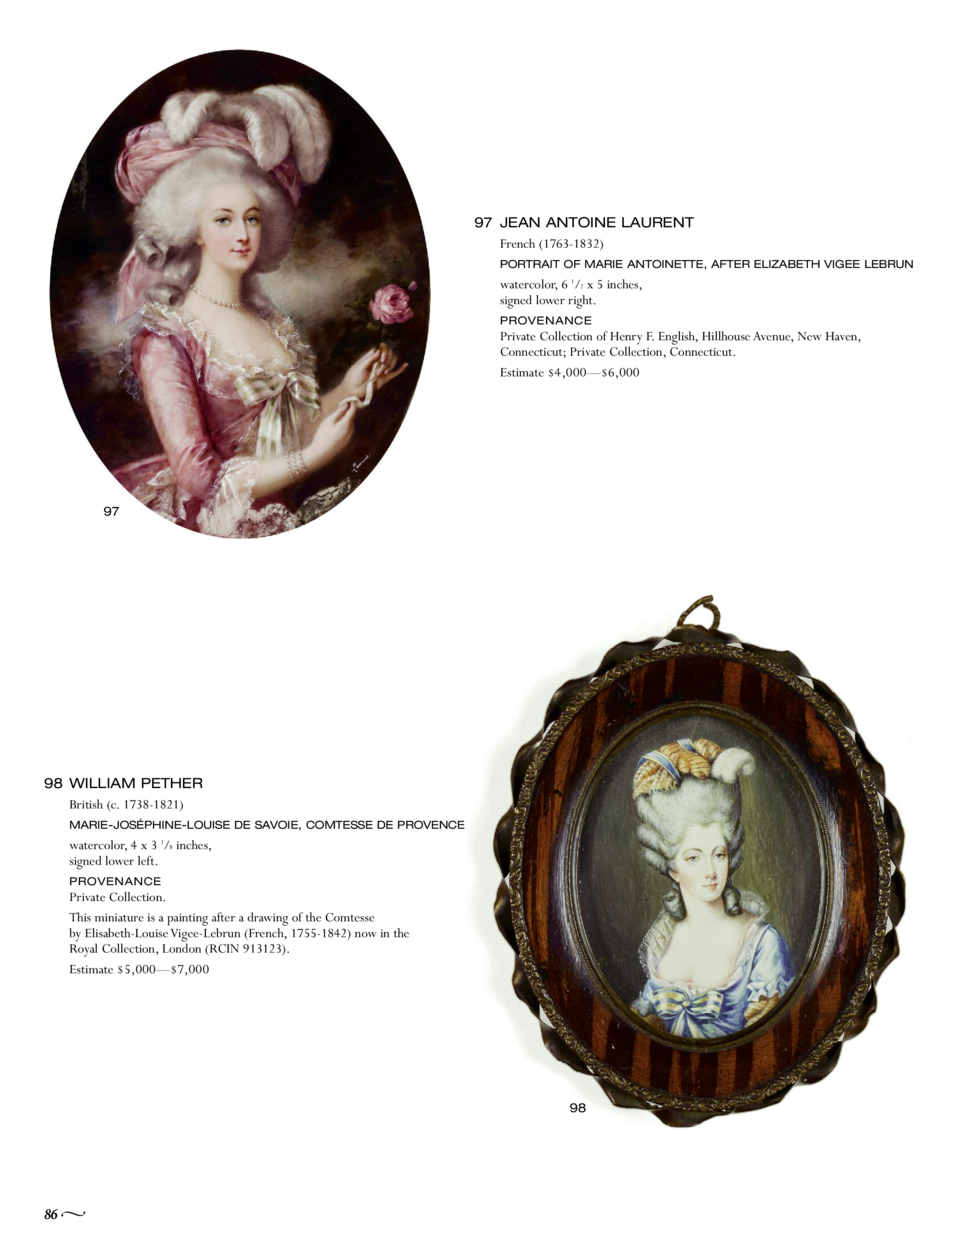 97 JEAN ANTOINE LAURENT French  1763-1832  PORTRAIT OF MARIE ANTOINETTE, AFTER ELIZABETH VIGEE LEBRUN  watercolor, 6 1 2 x...